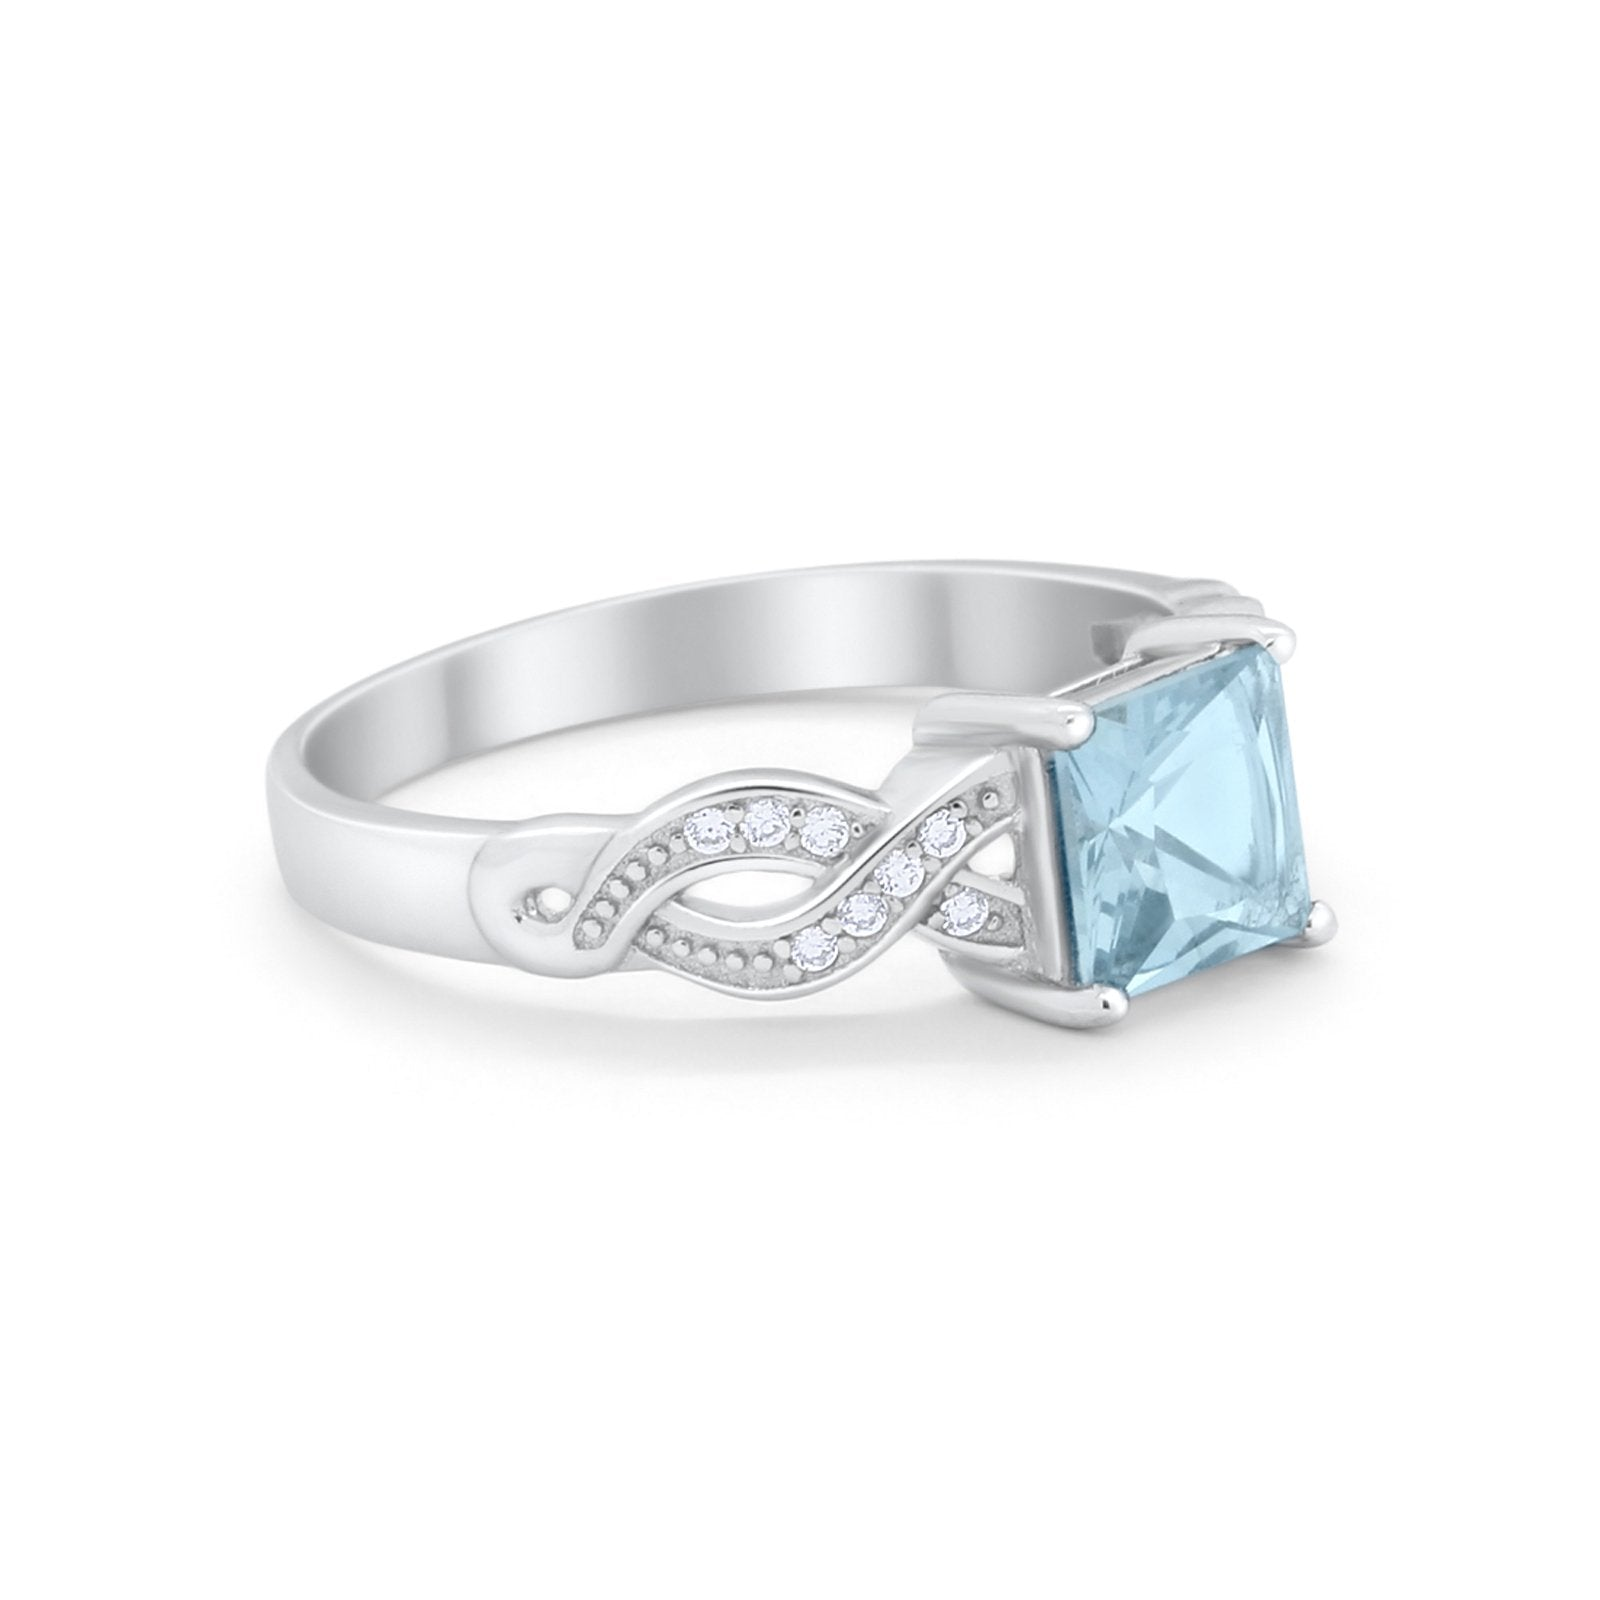 Solitaire Infinity Shank Ring Princess Cut Simulated Aquamarine CZ 925 Sterling Silver